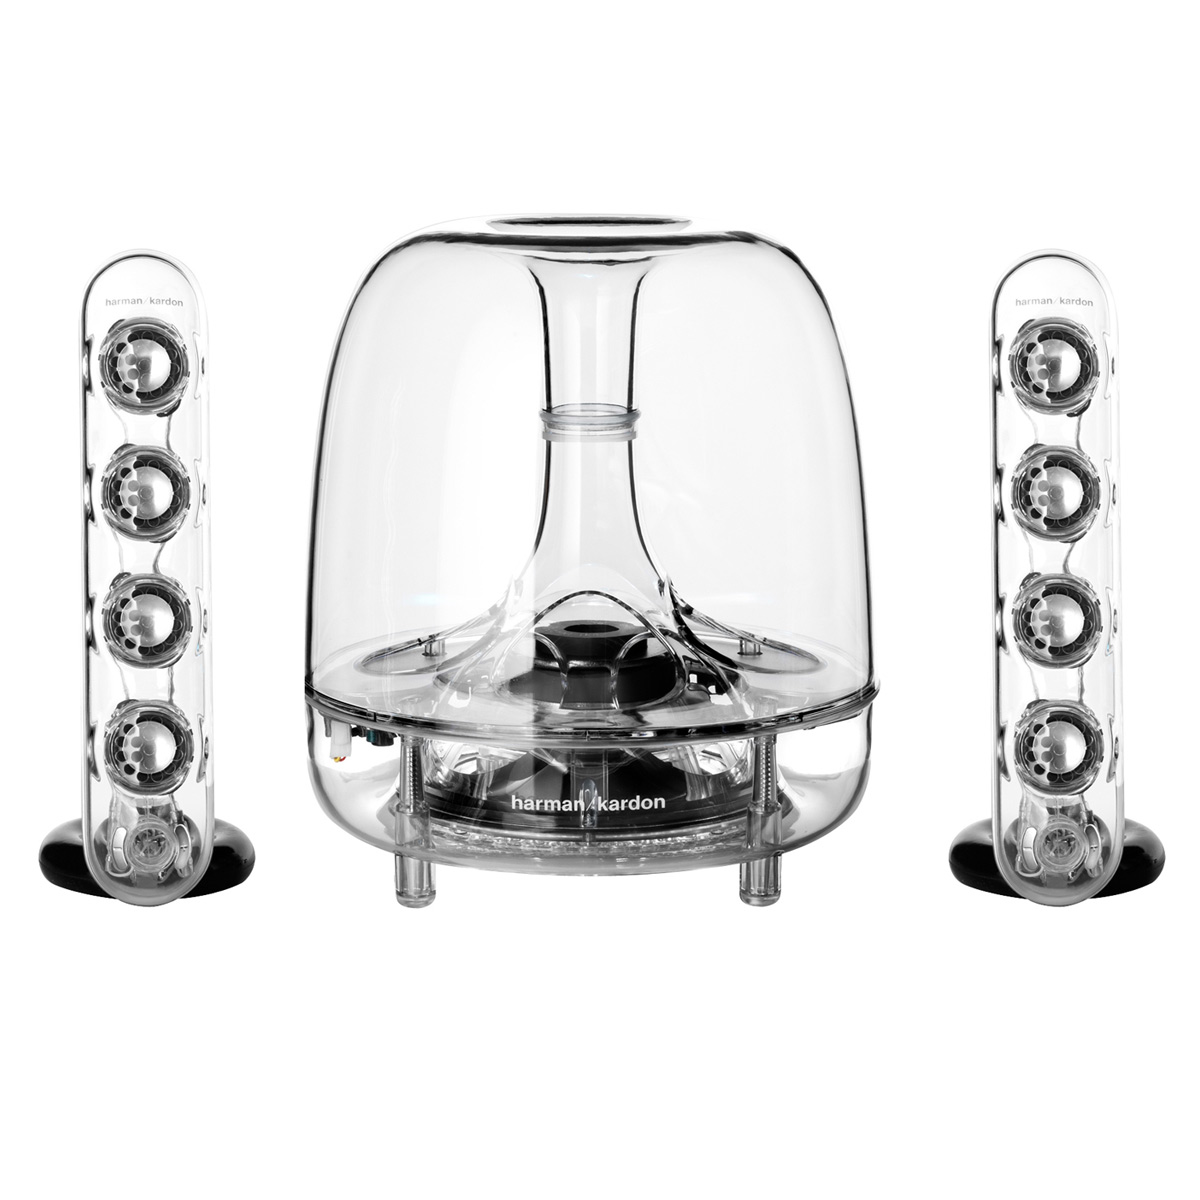 harman kardon soundsticks iii speaker system ebay. Black Bedroom Furniture Sets. Home Design Ideas